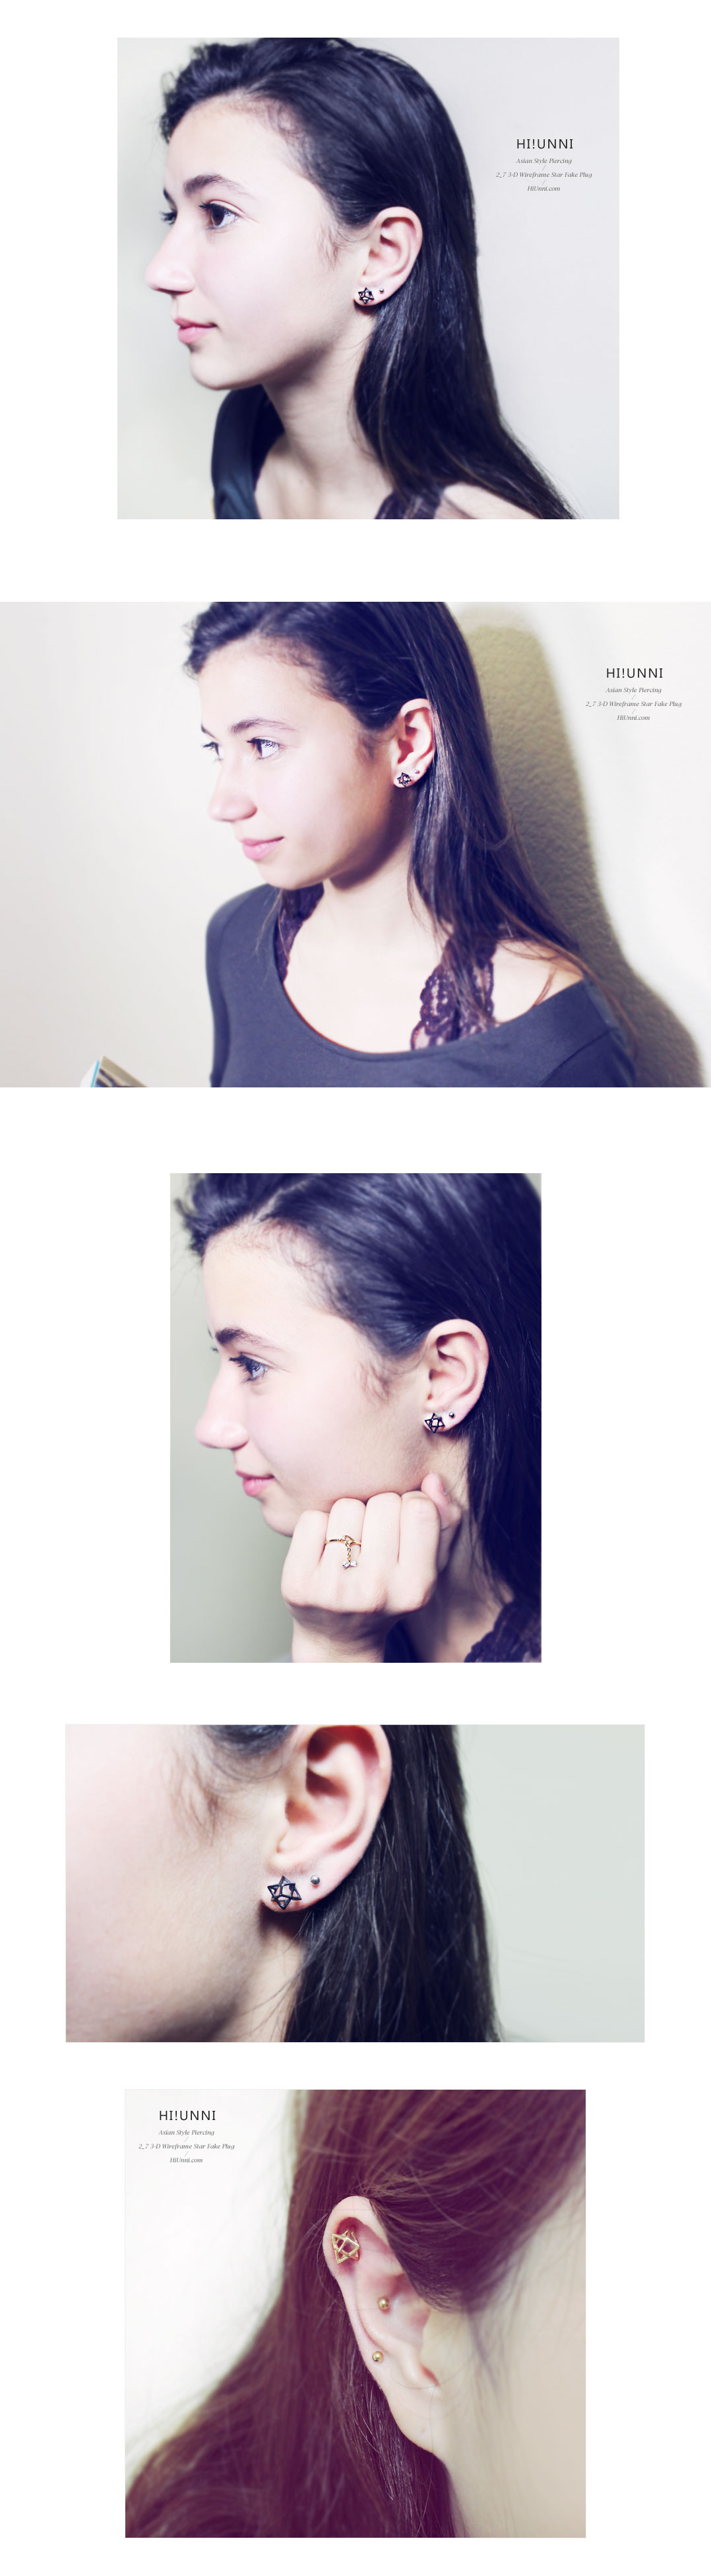 ear_studs_piercing_Cartilage_earrings_16g_316l_korean_asian_style_barbell_cheaters_fake_plug_3d_Wireframe_Star_2